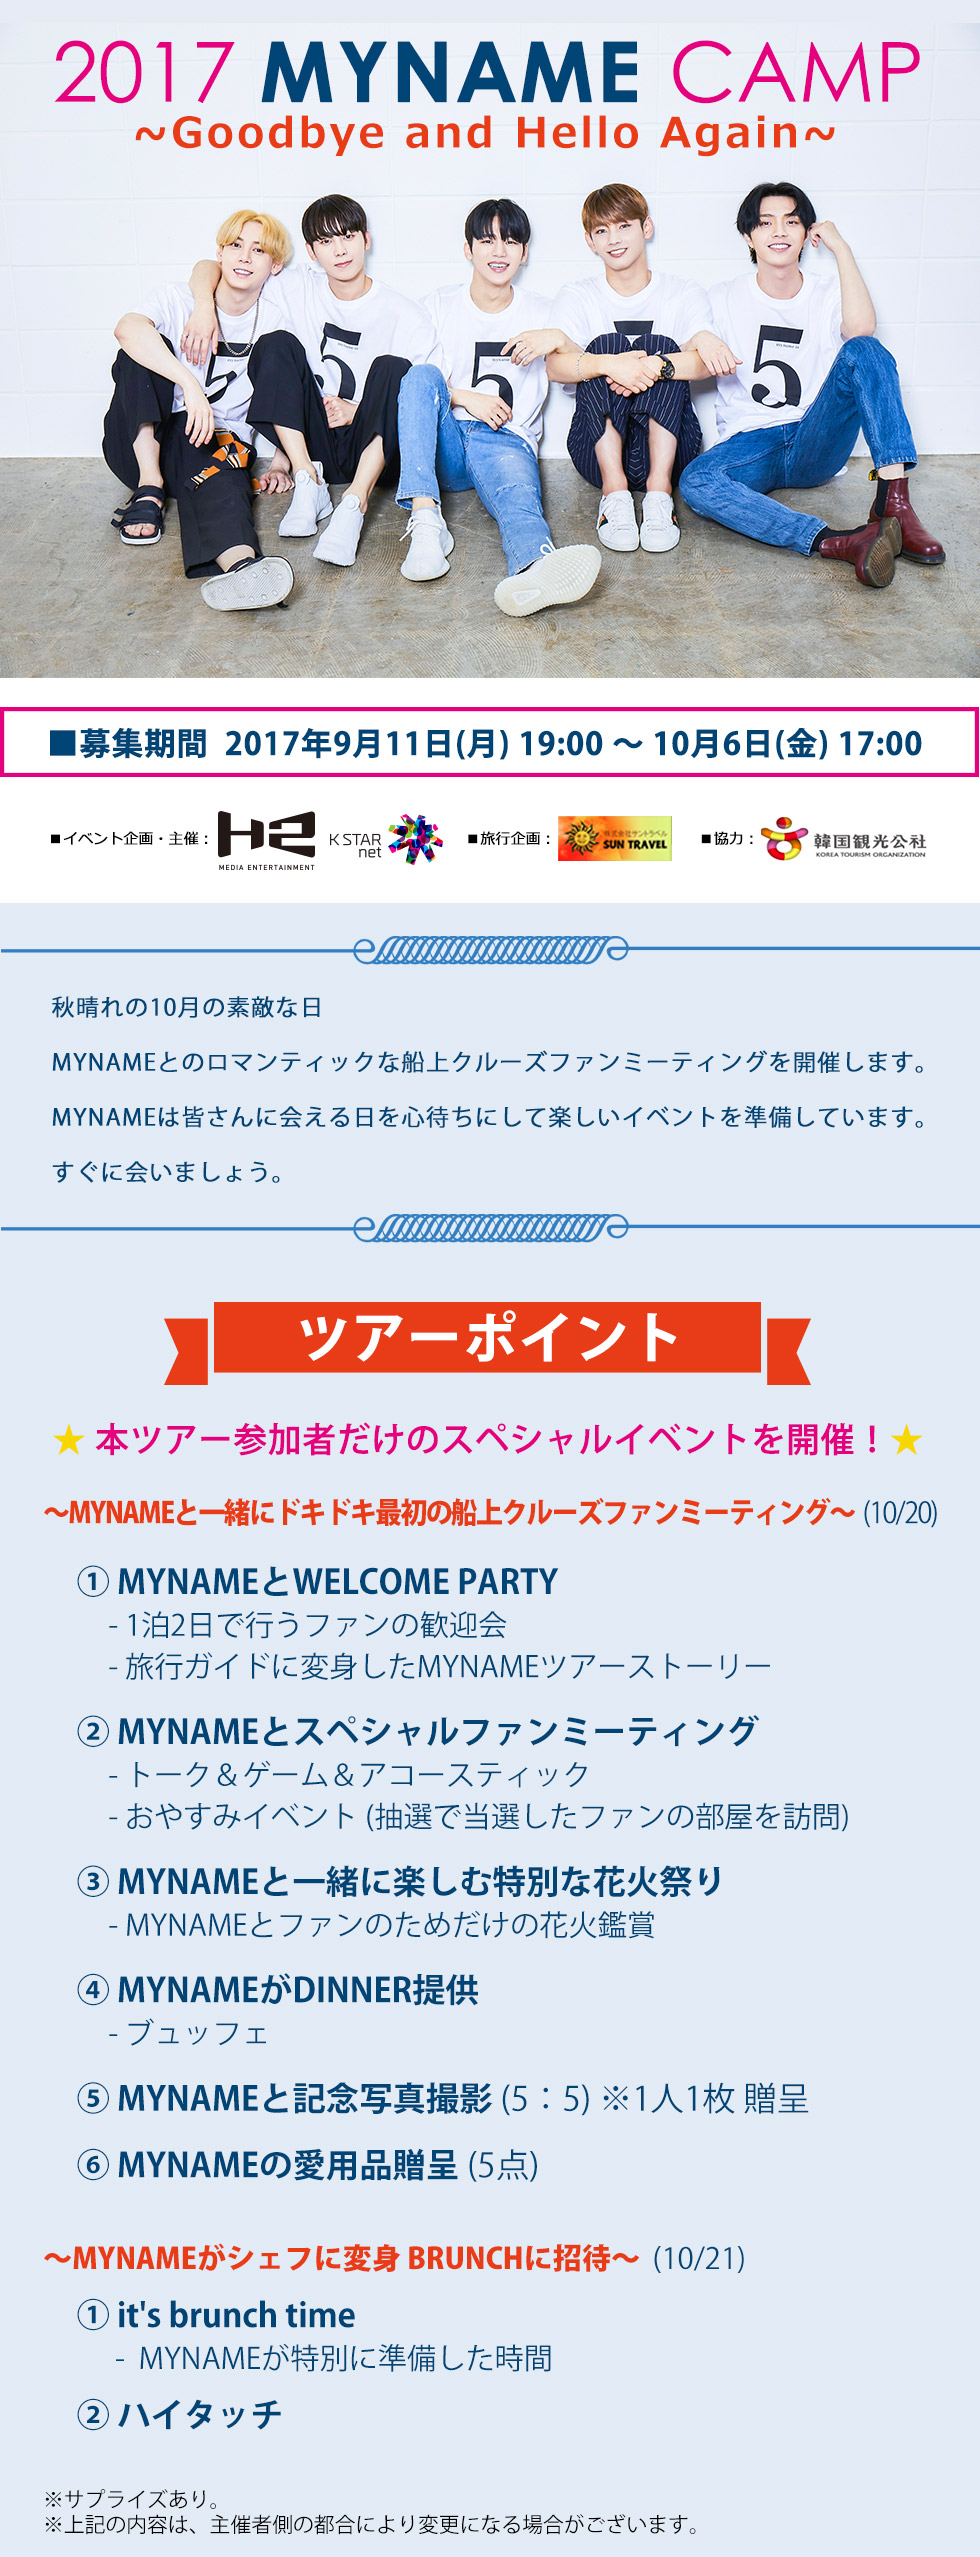 【日本公式】2017 MYNAME CAMP ~Goodbye and Hello Again~